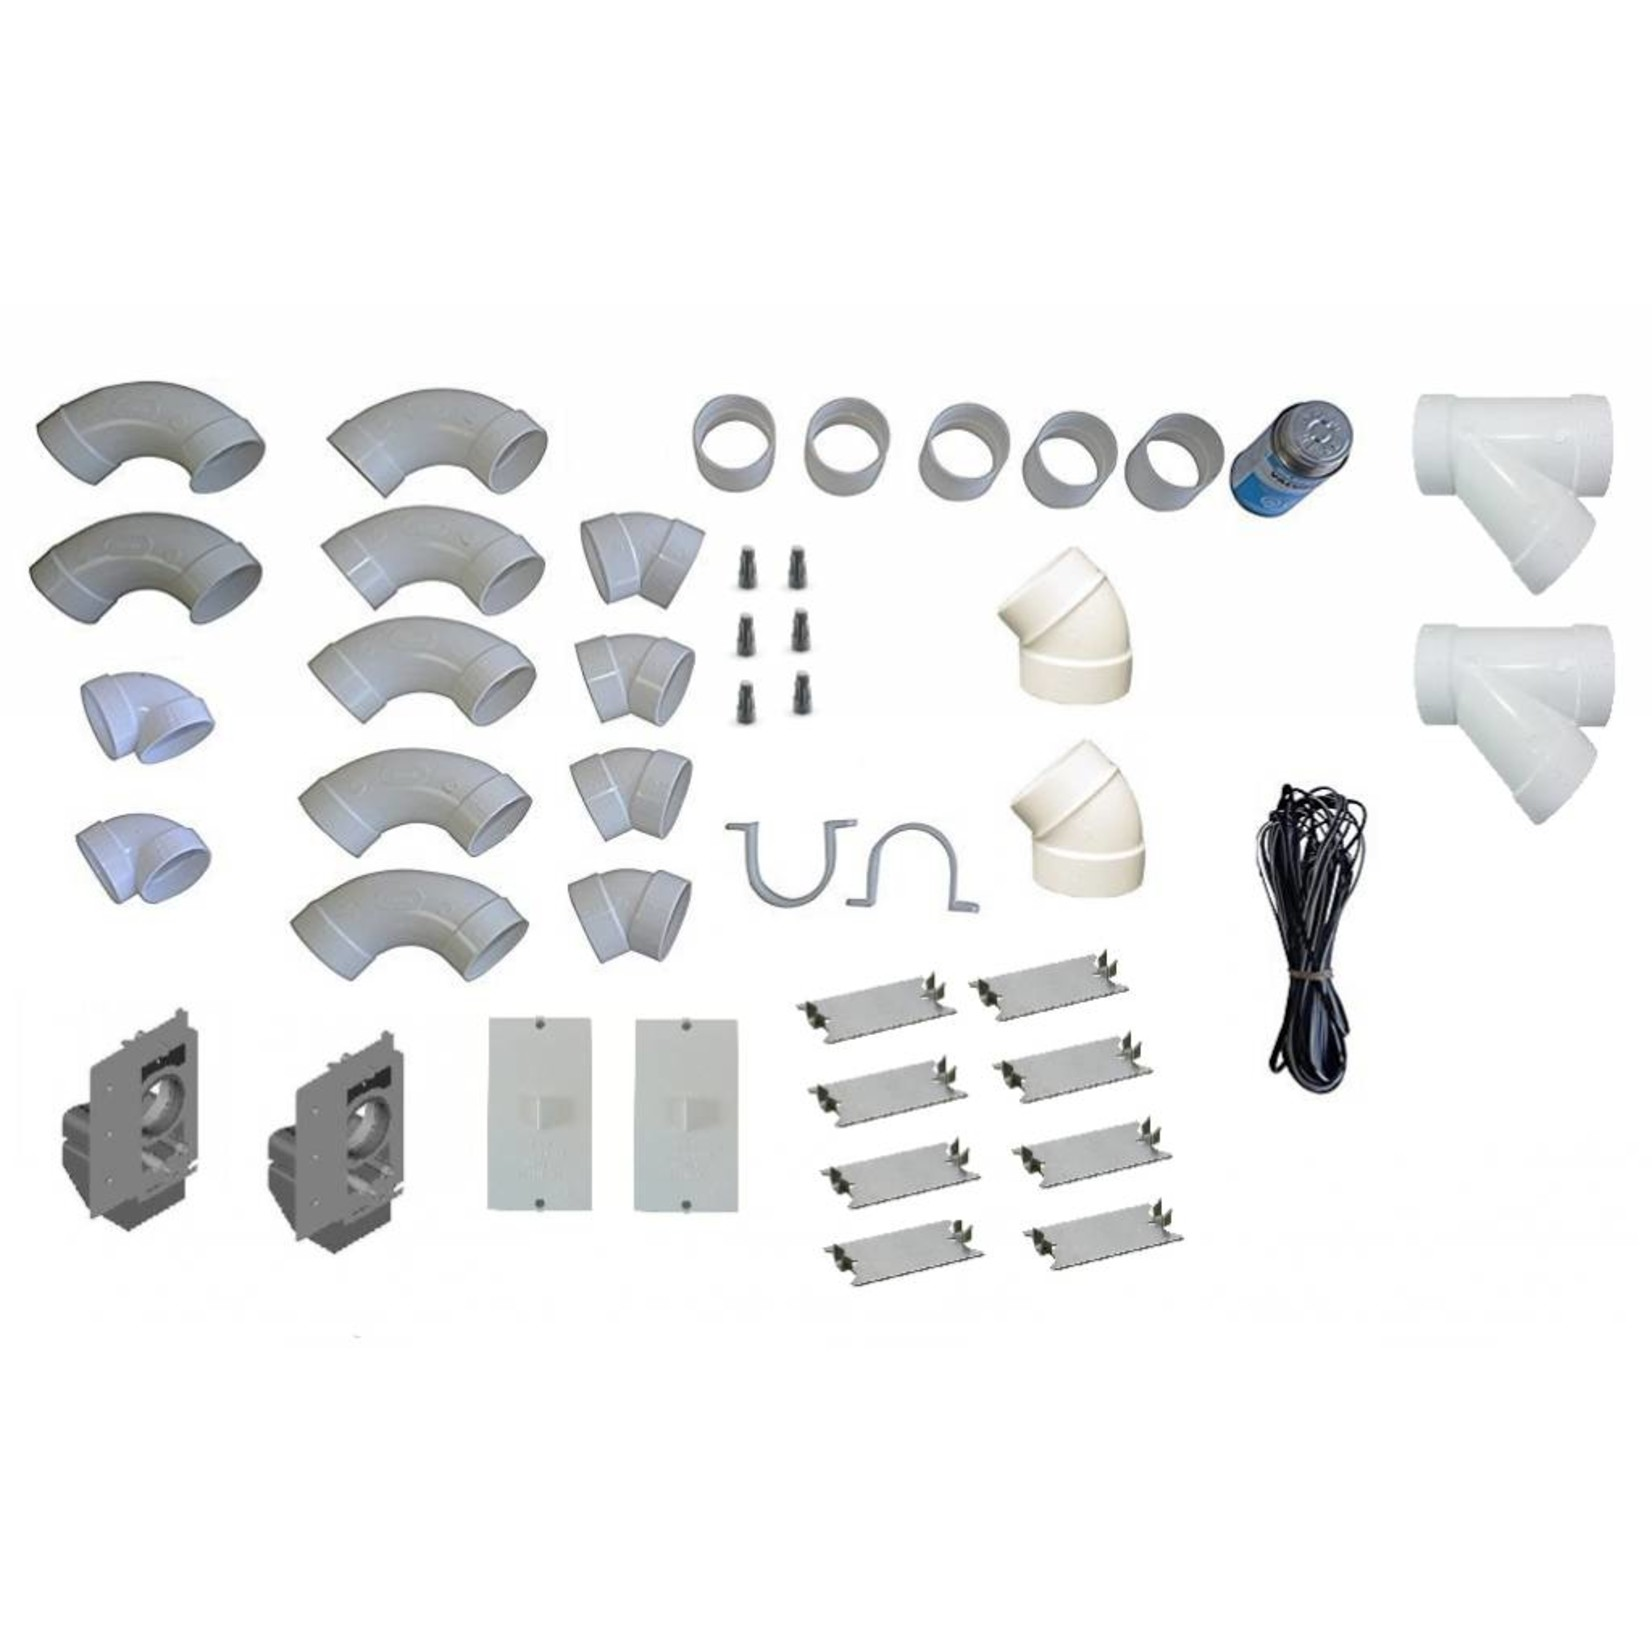 CVS Traditional Central Vac Rough-In Kit - 2 Inlets